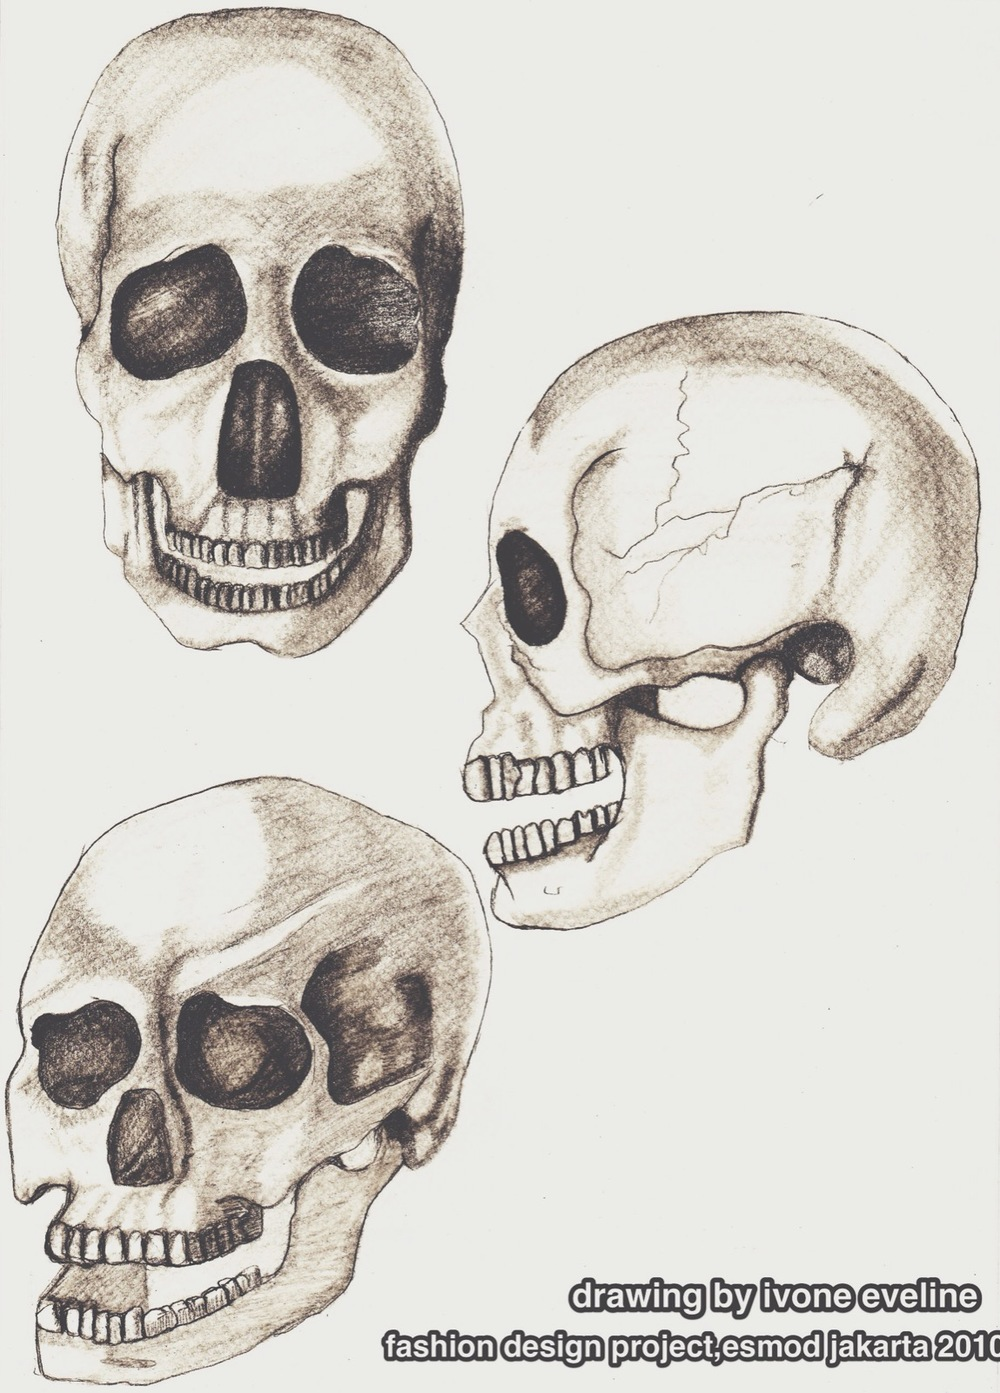 learn to draw skulls, my first fashion design project. i did it in a week. a week!